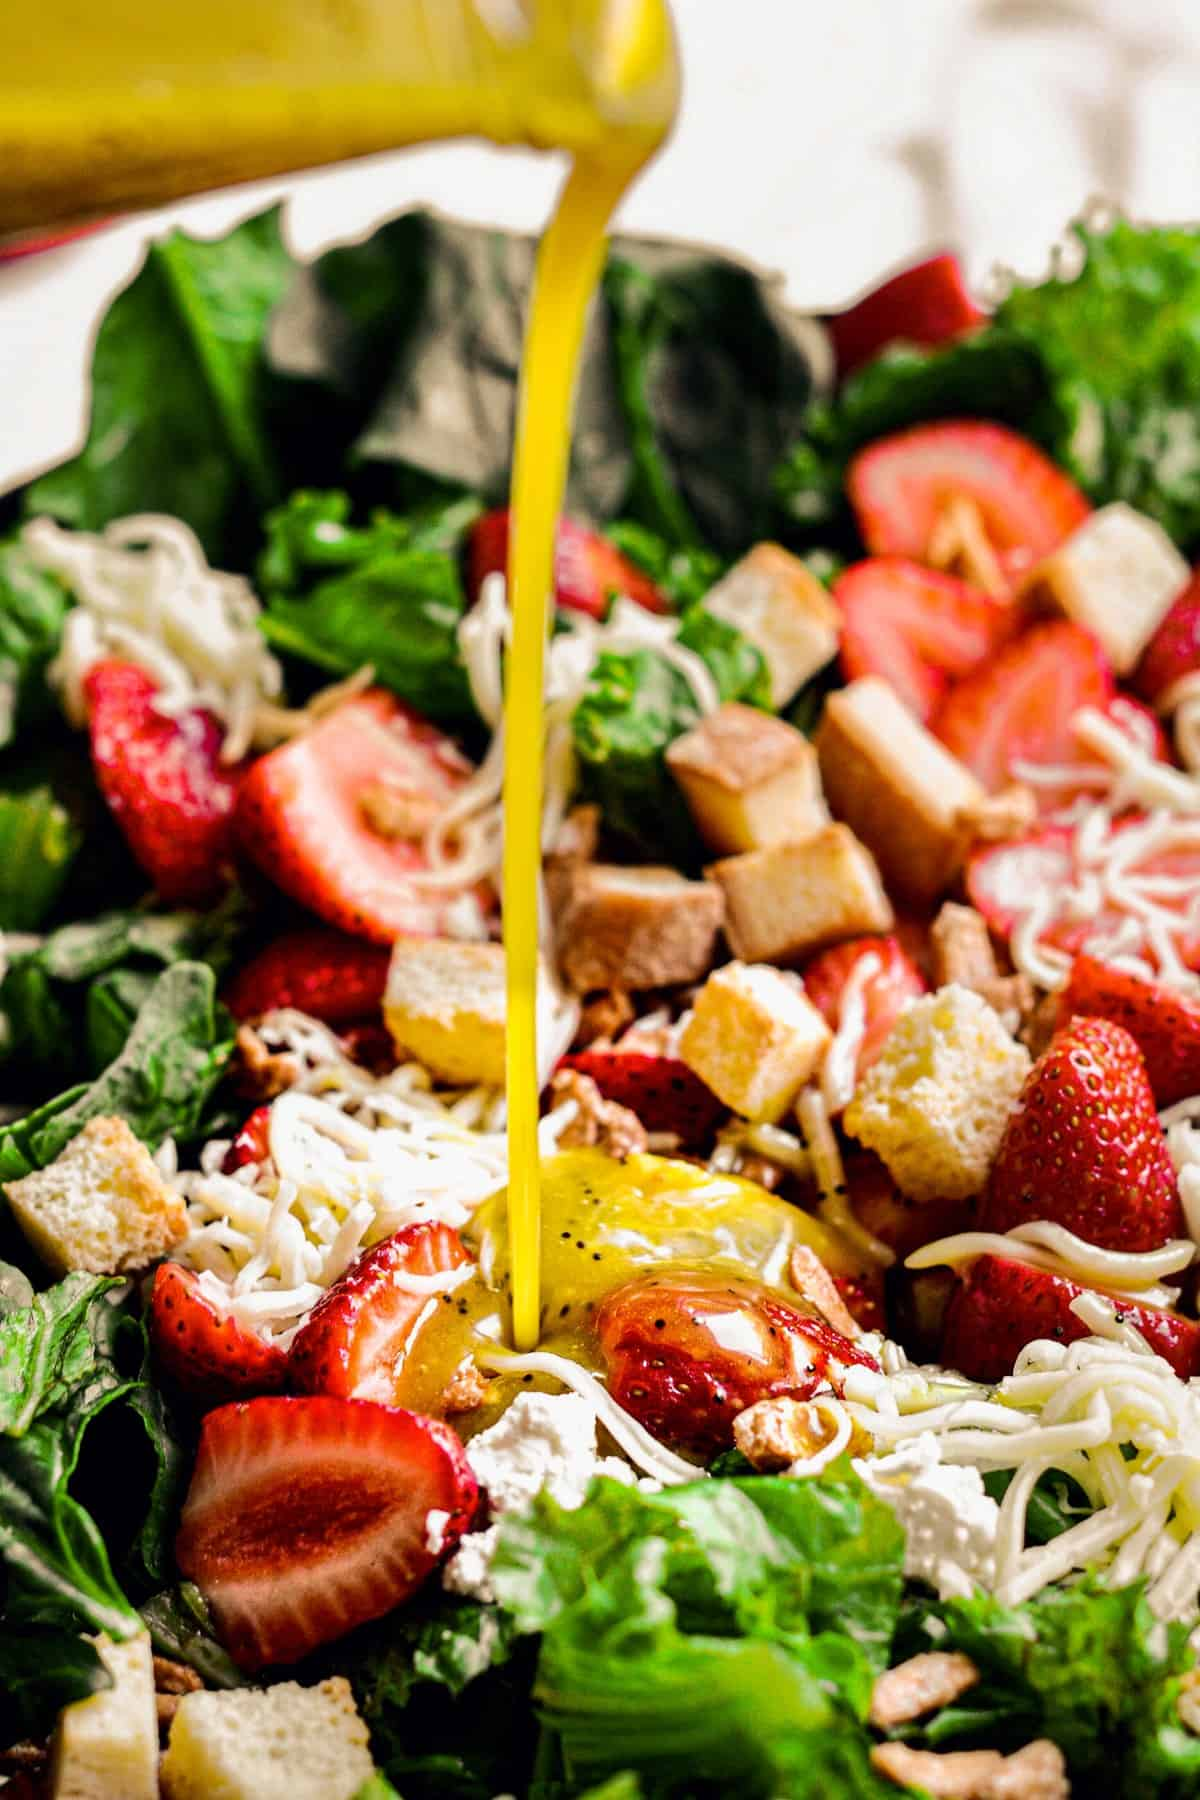 pouring salad dressing over a bed of greens and strawberries